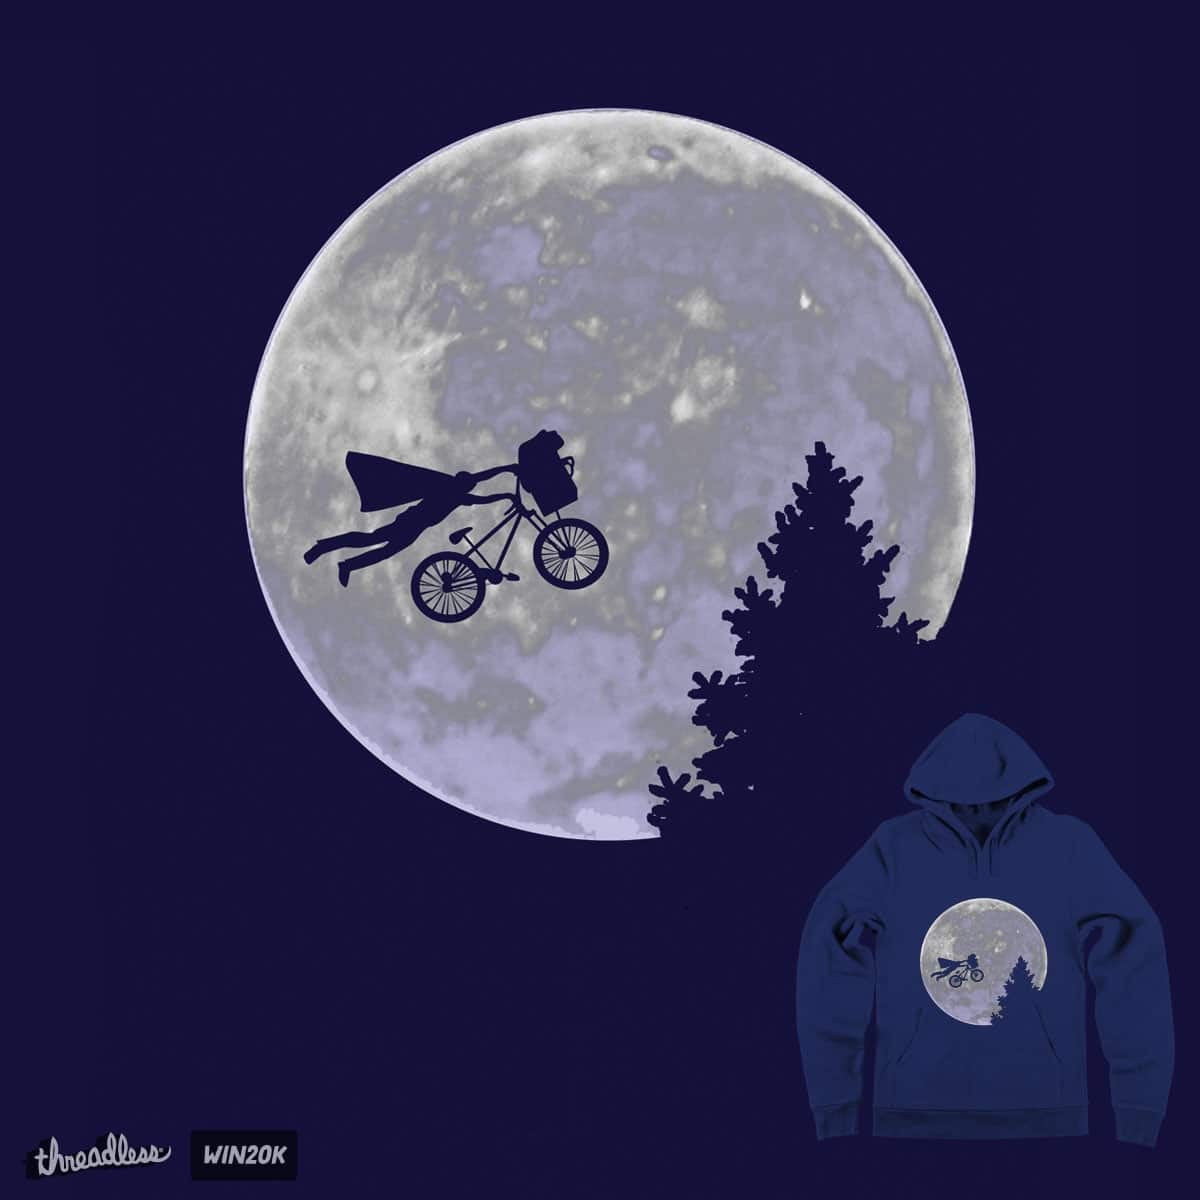 Epic Tricks by BeckyBee3_1 on Threadless